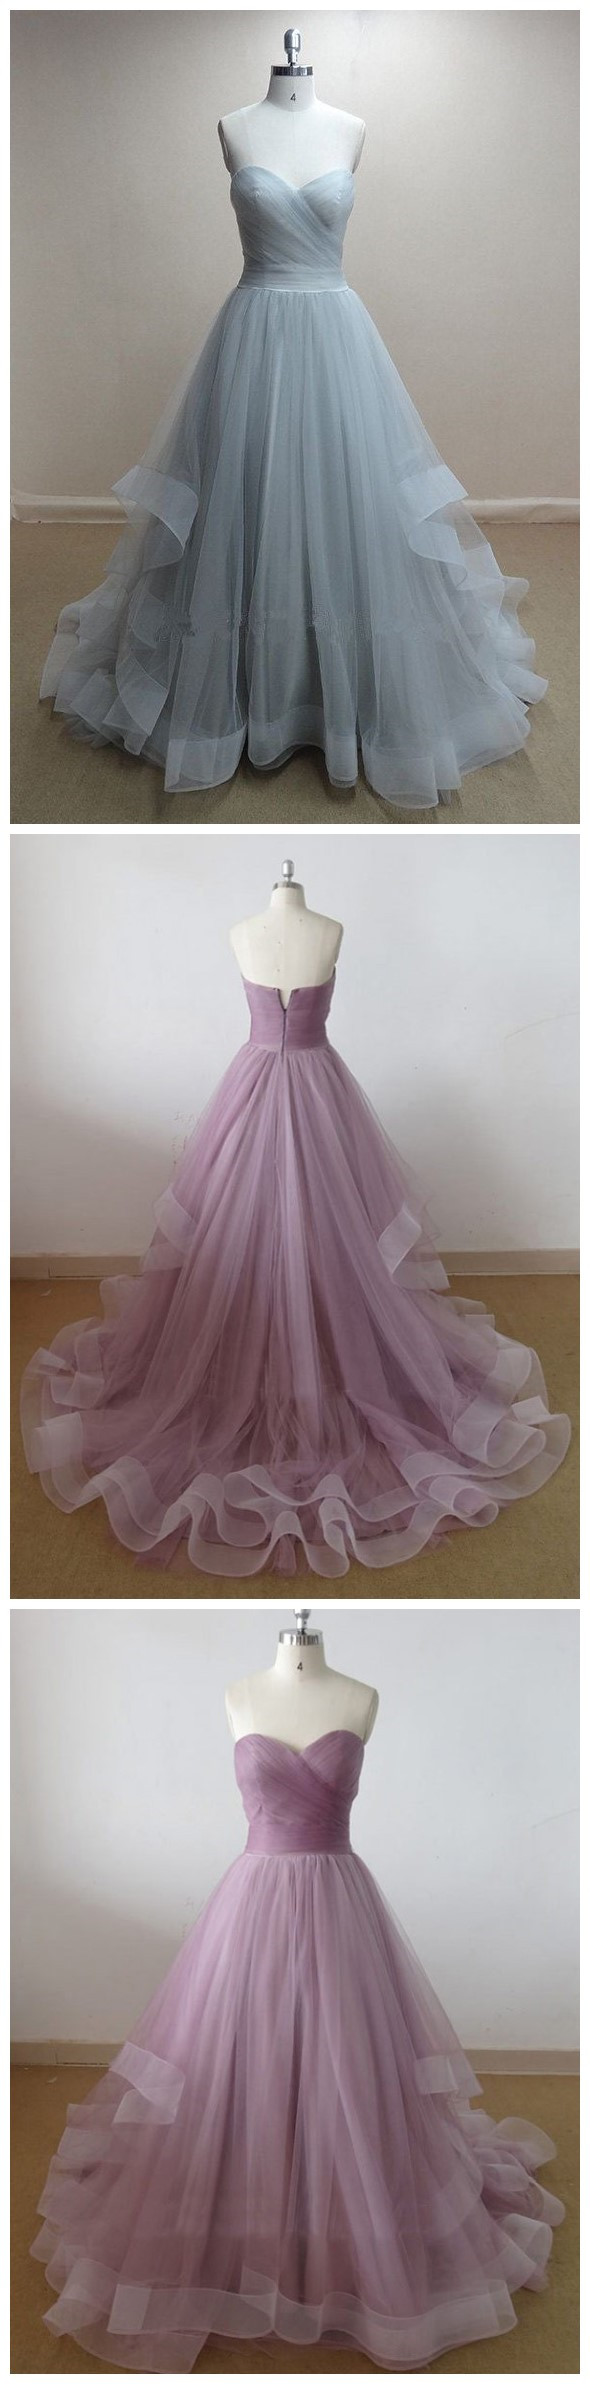 Simple elegant aline sweetheart ruched tulle long prom dressparty